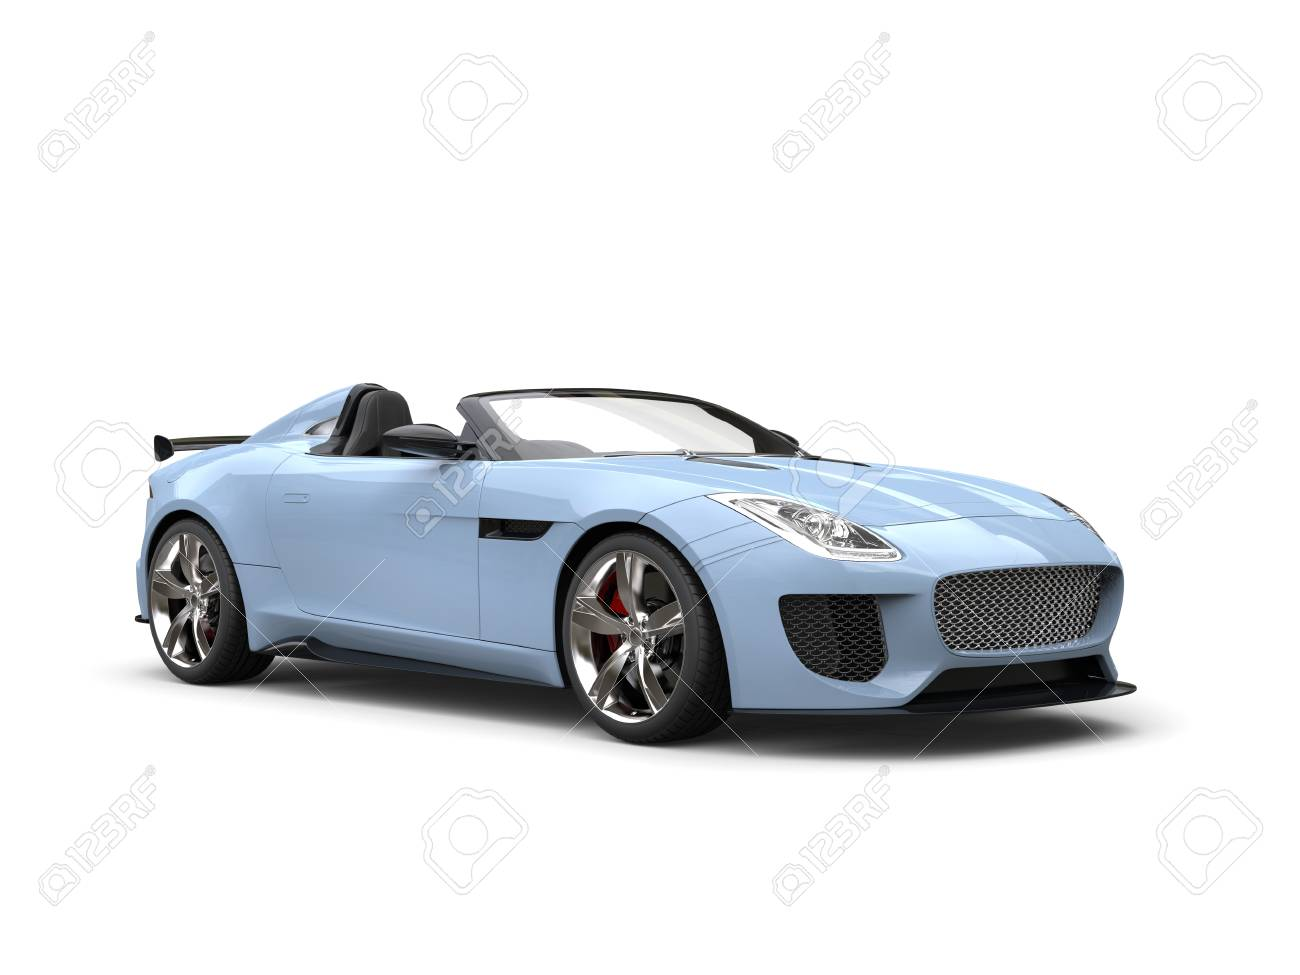 Light Blue Modern Cabrio Spots Car Stock Photo Picture And Royalty Free Image Image 77464173